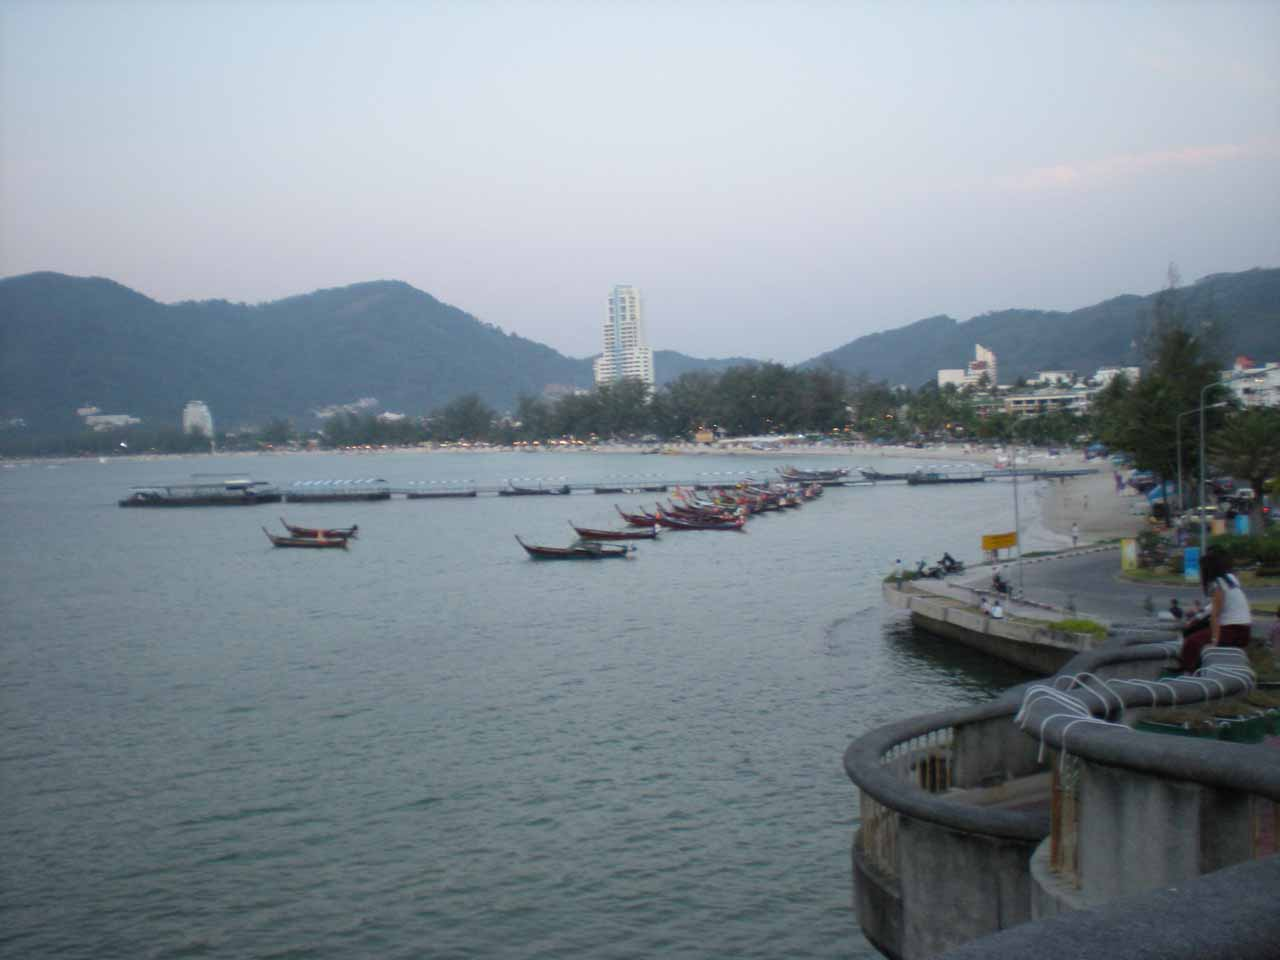 Approaching Patong Beach Town